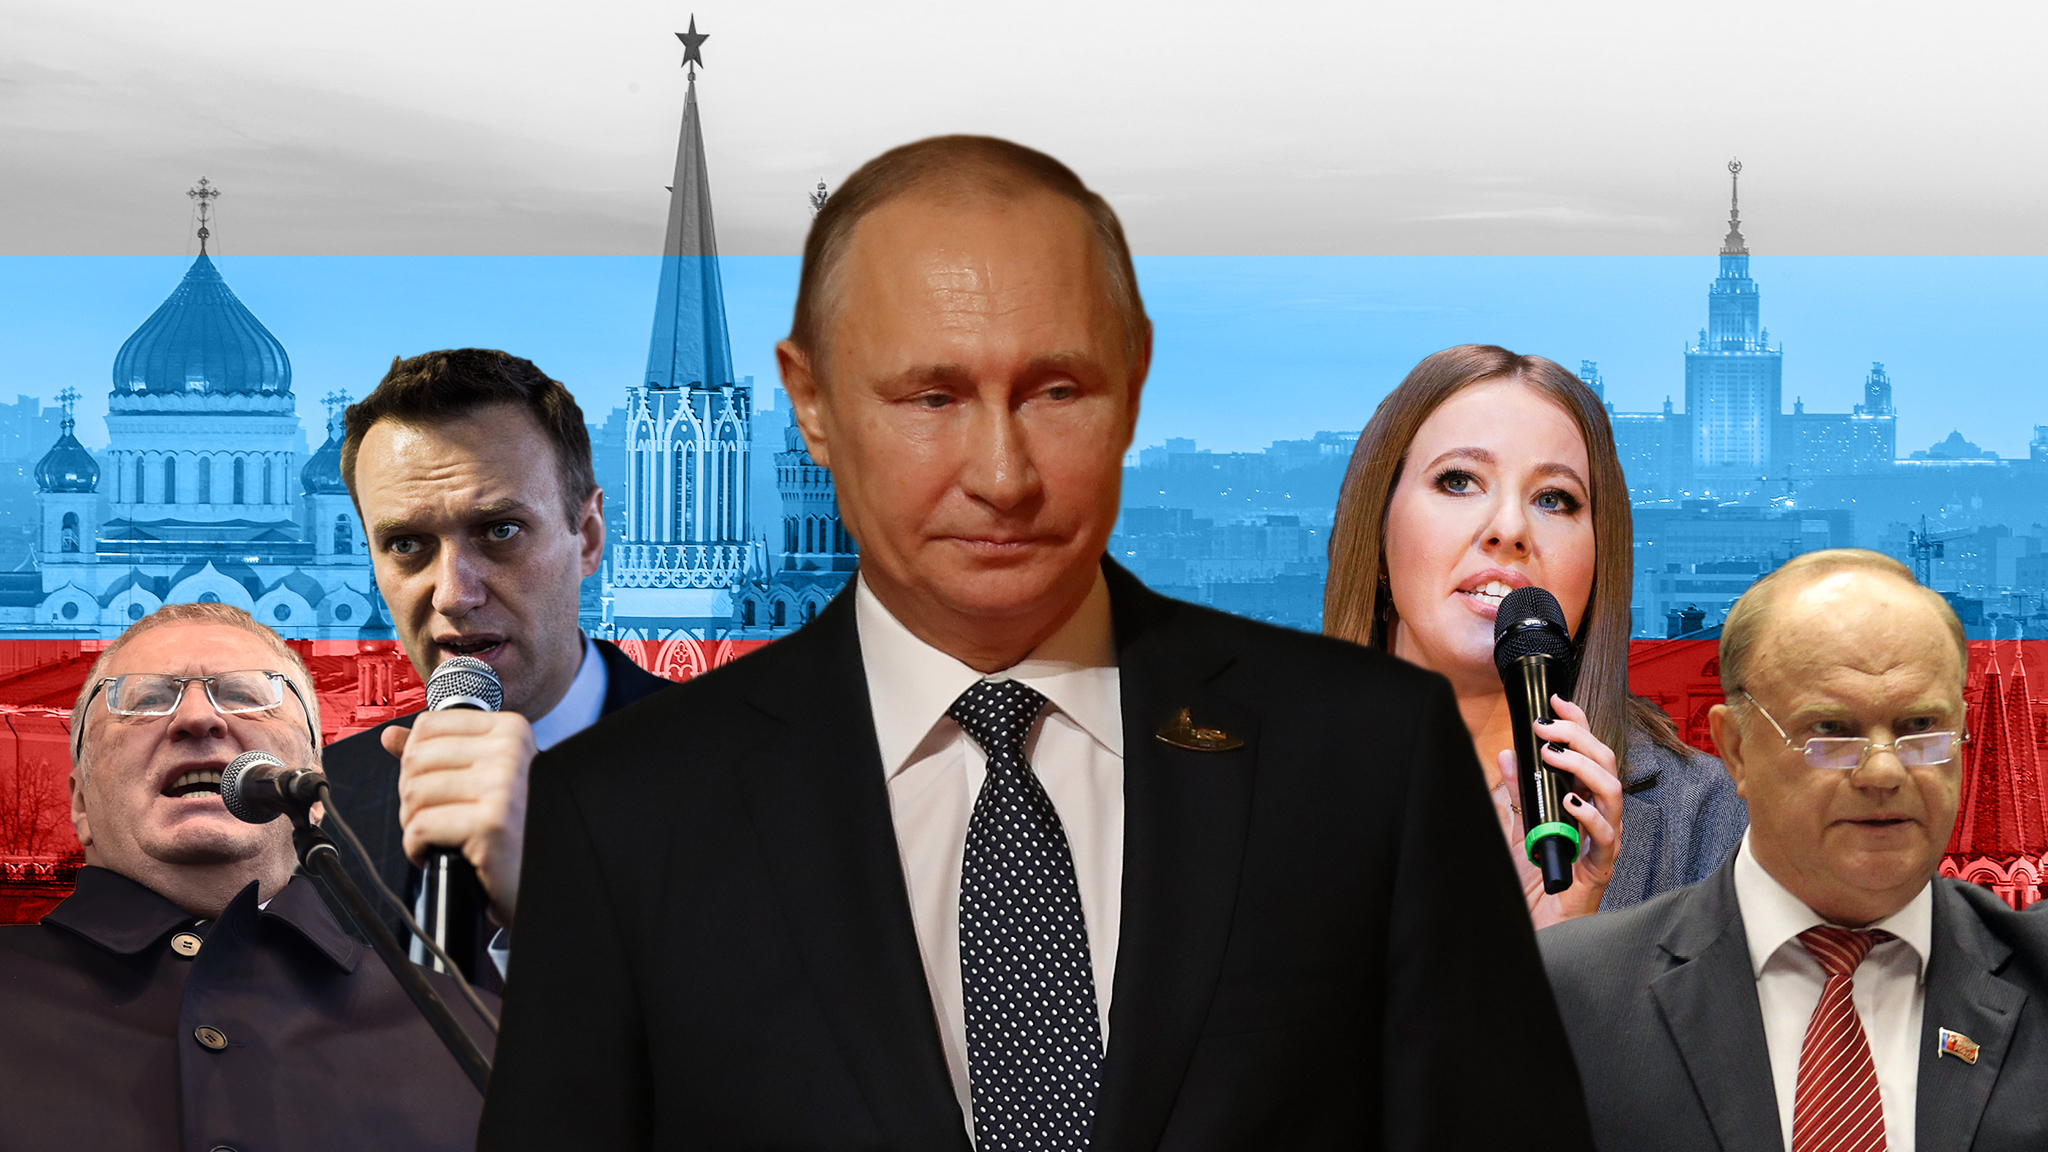 Changing the rules: what comes after a Putin election victory?